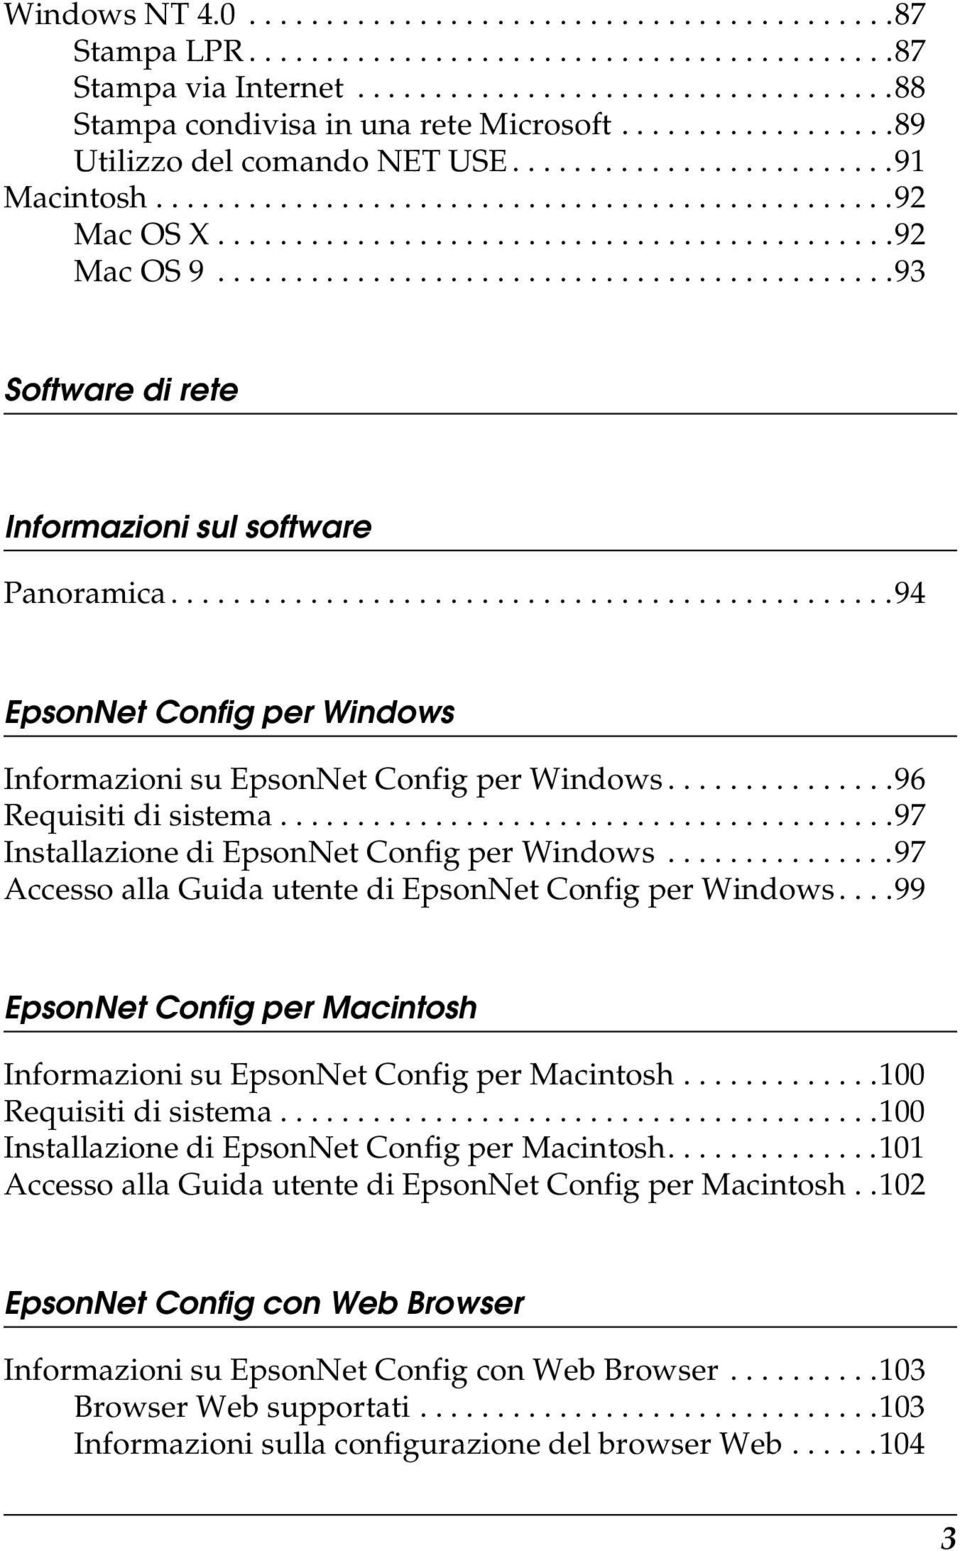 ...........................................93 Software di rete Informazioni sul software Panoramica...............................................94 EpsonNet Config per Windows Informazioni su EpsonNet Config per Windows.